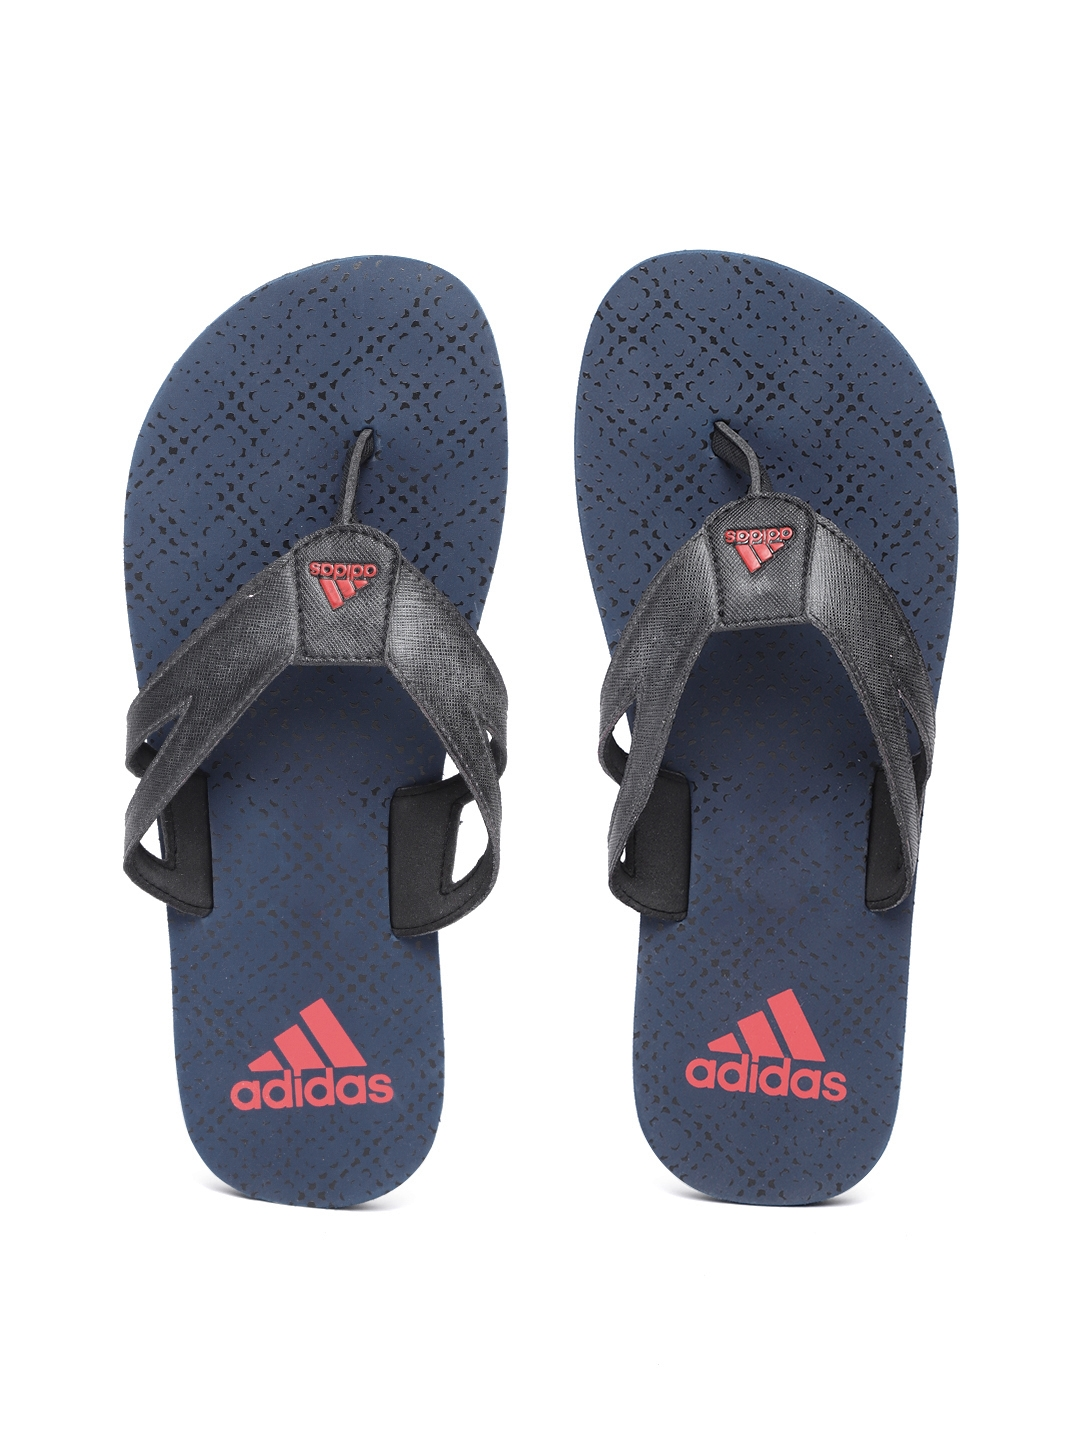 643daa023017 Buy ADIDAS Men Charcoal Grey   Navy Blue OZOR Printed Thong Flip ...